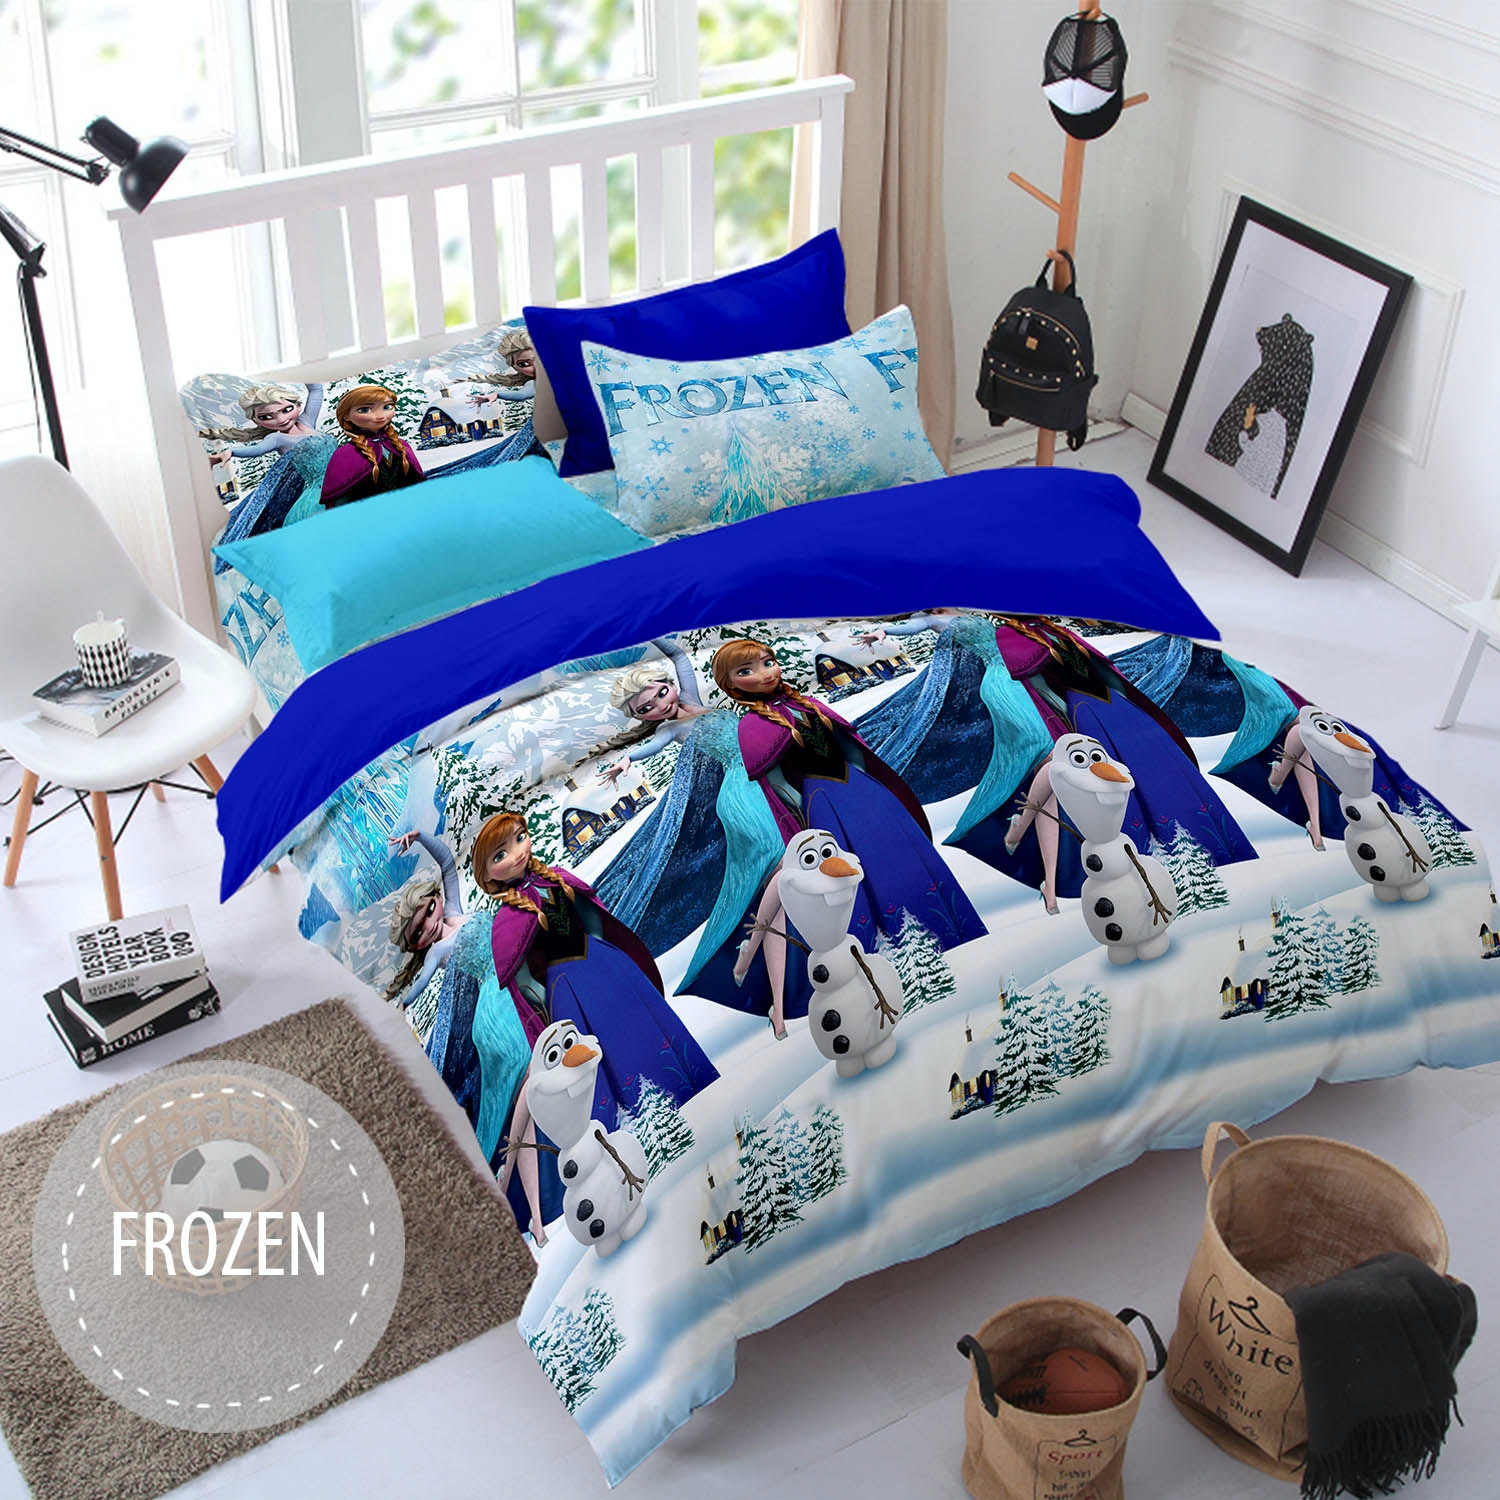 Pesona Sprei Disperse Frozen Biru Uk 160 T20